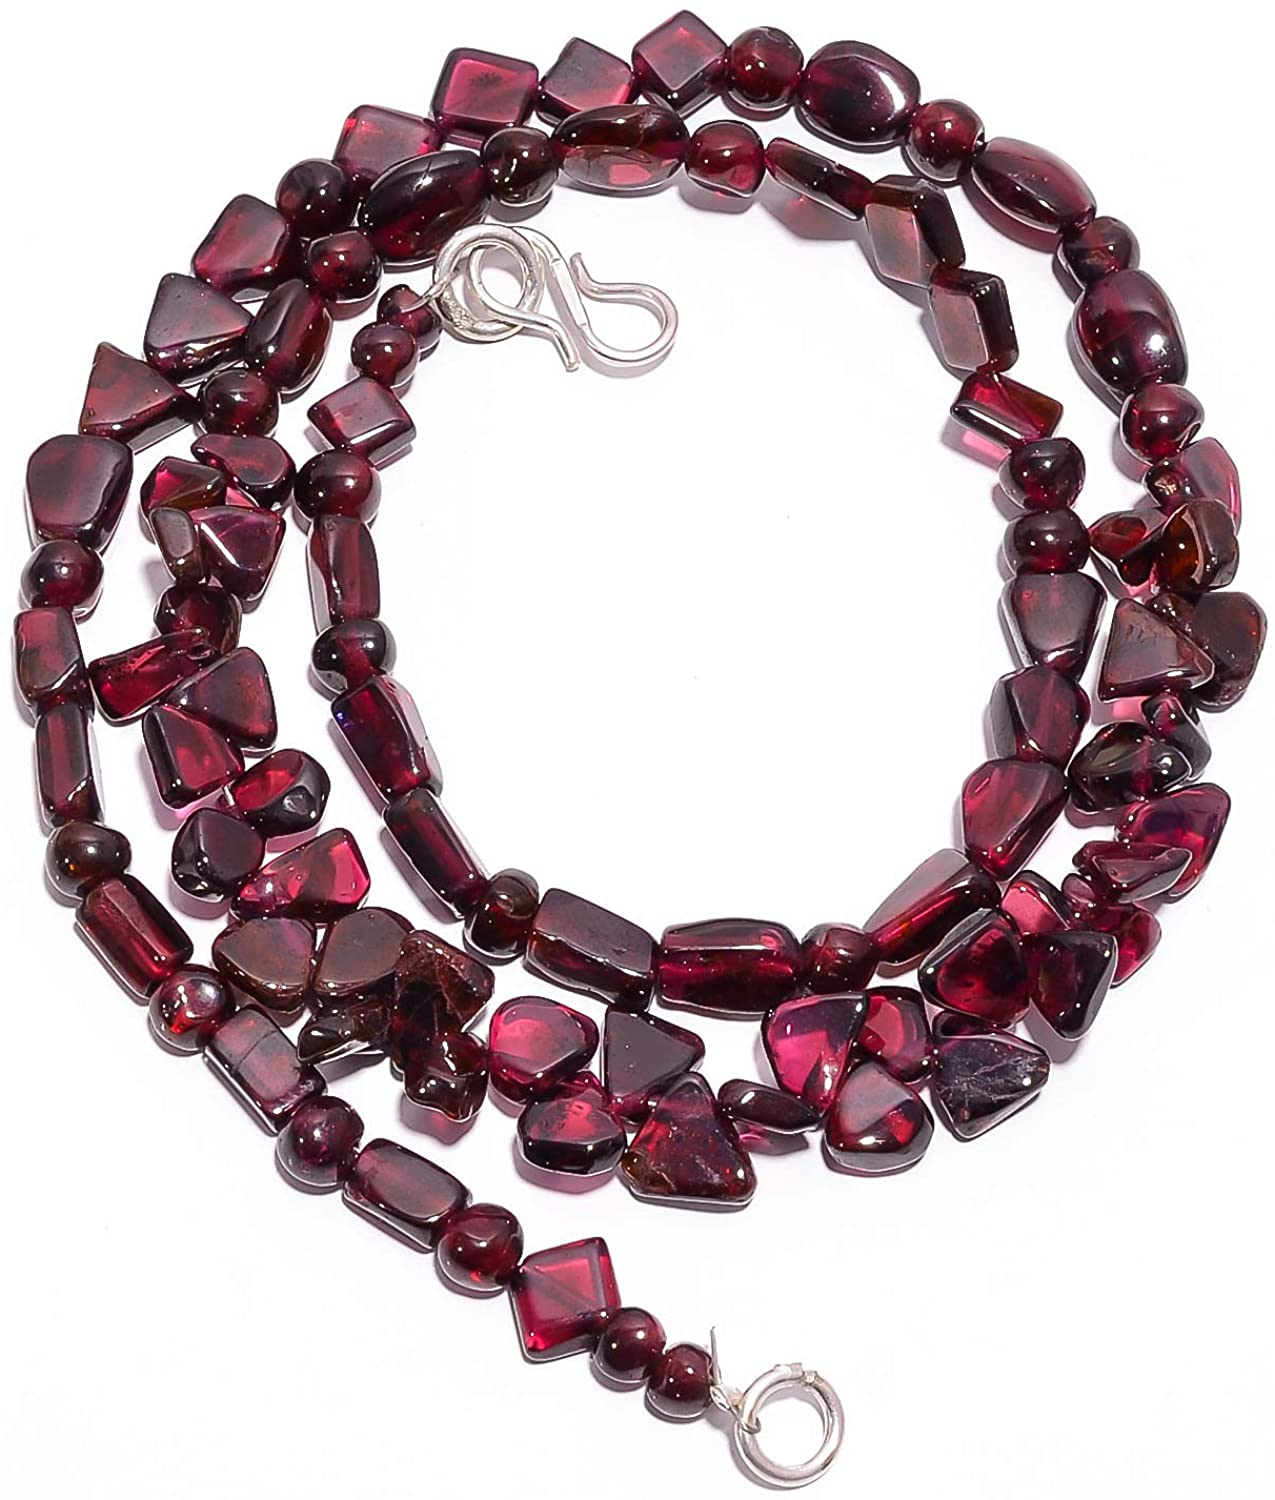 kanta incorporation Natural Mozambique Garnet Gemstone Smooth Beads Necklace 4-9 mm 18